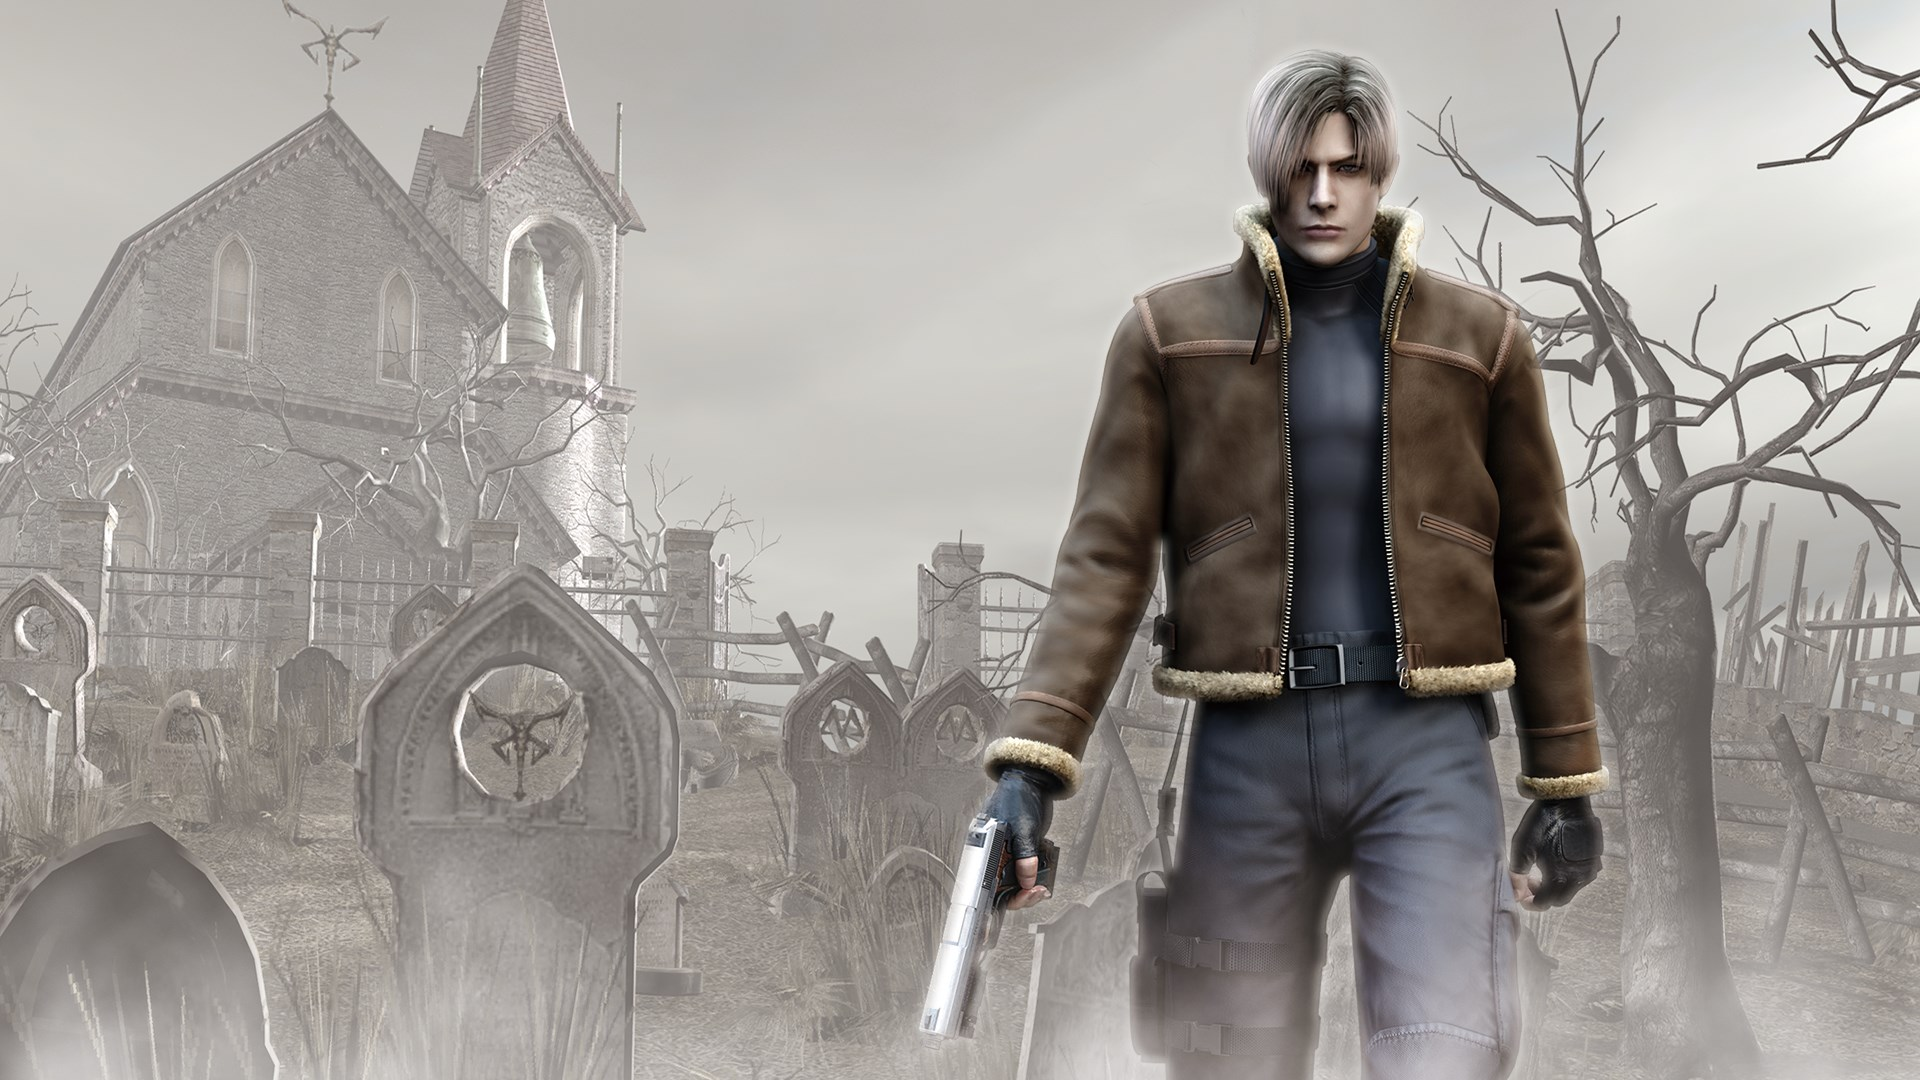 resident evil 4 merchant wallpaper